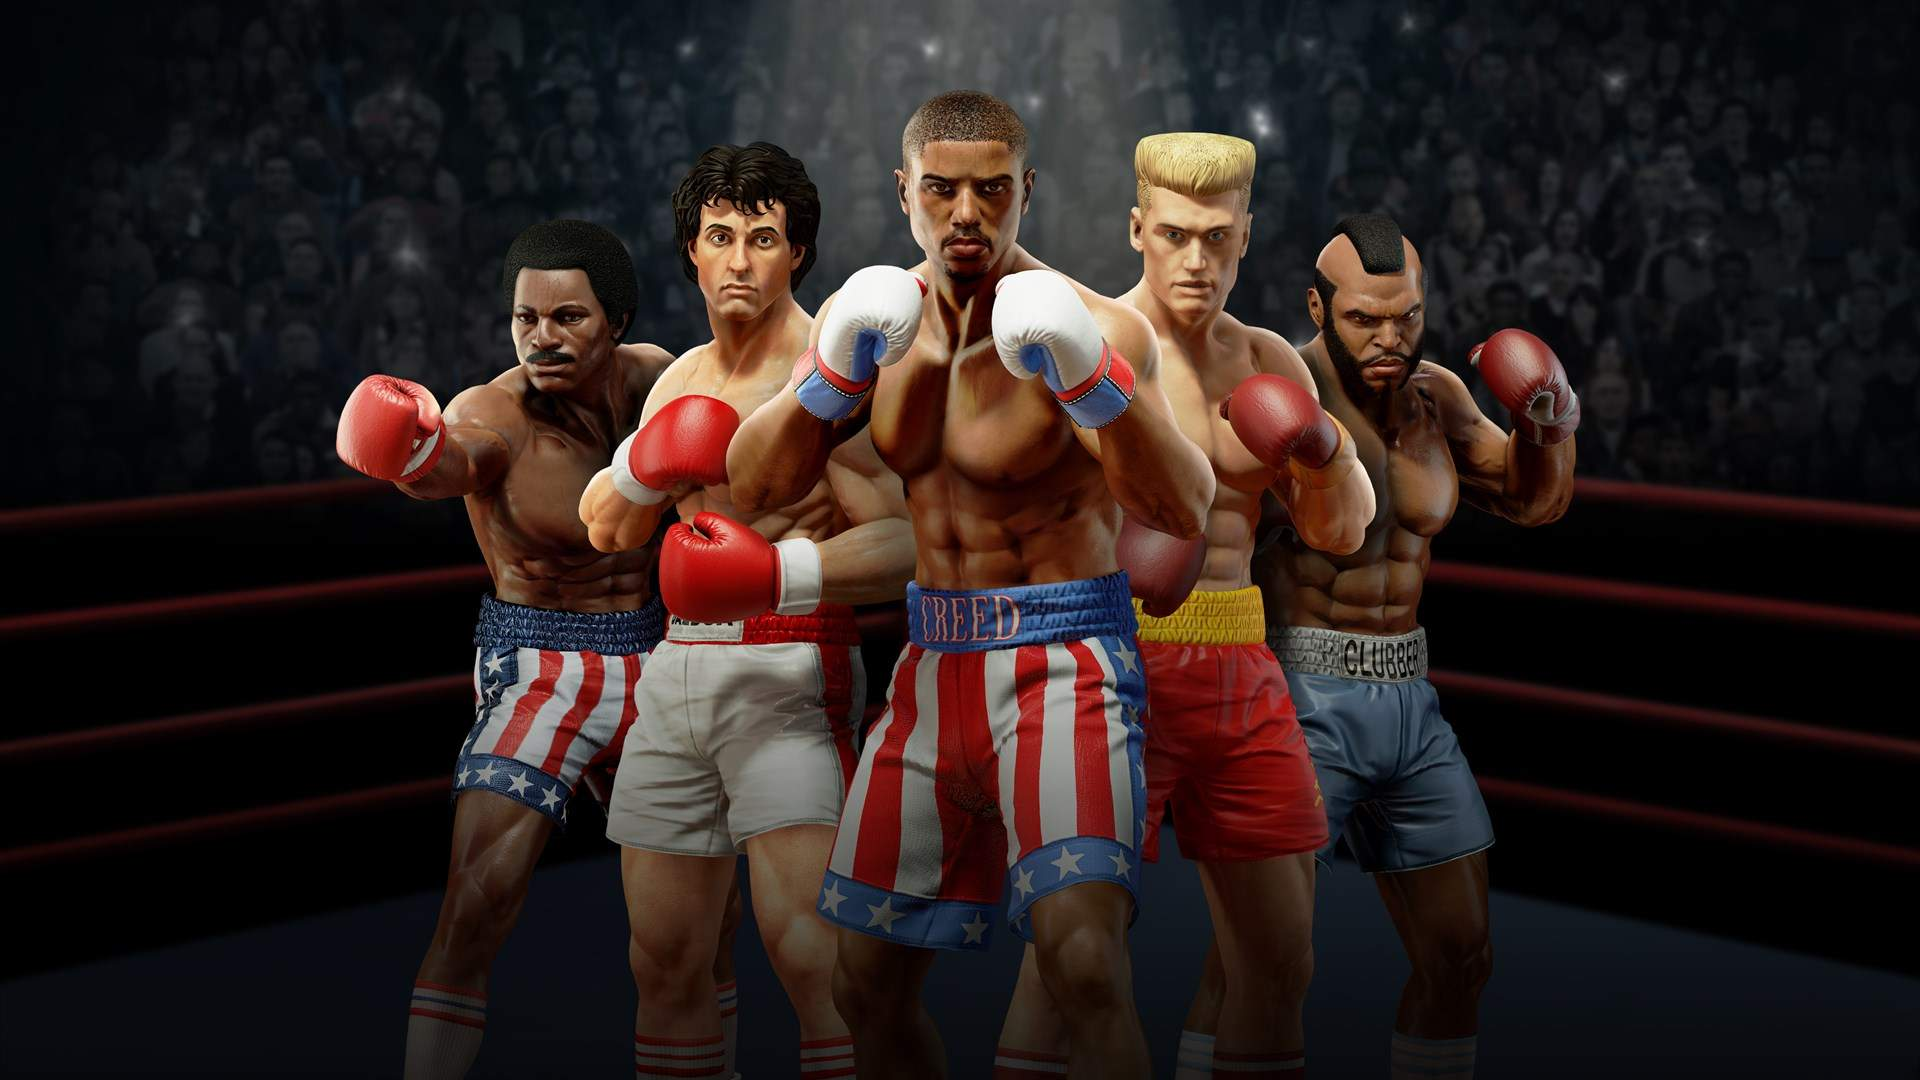 Big Rumble Boxing: Creed Champions Is Now Available For Xbox One And Xbox Series X|S 1